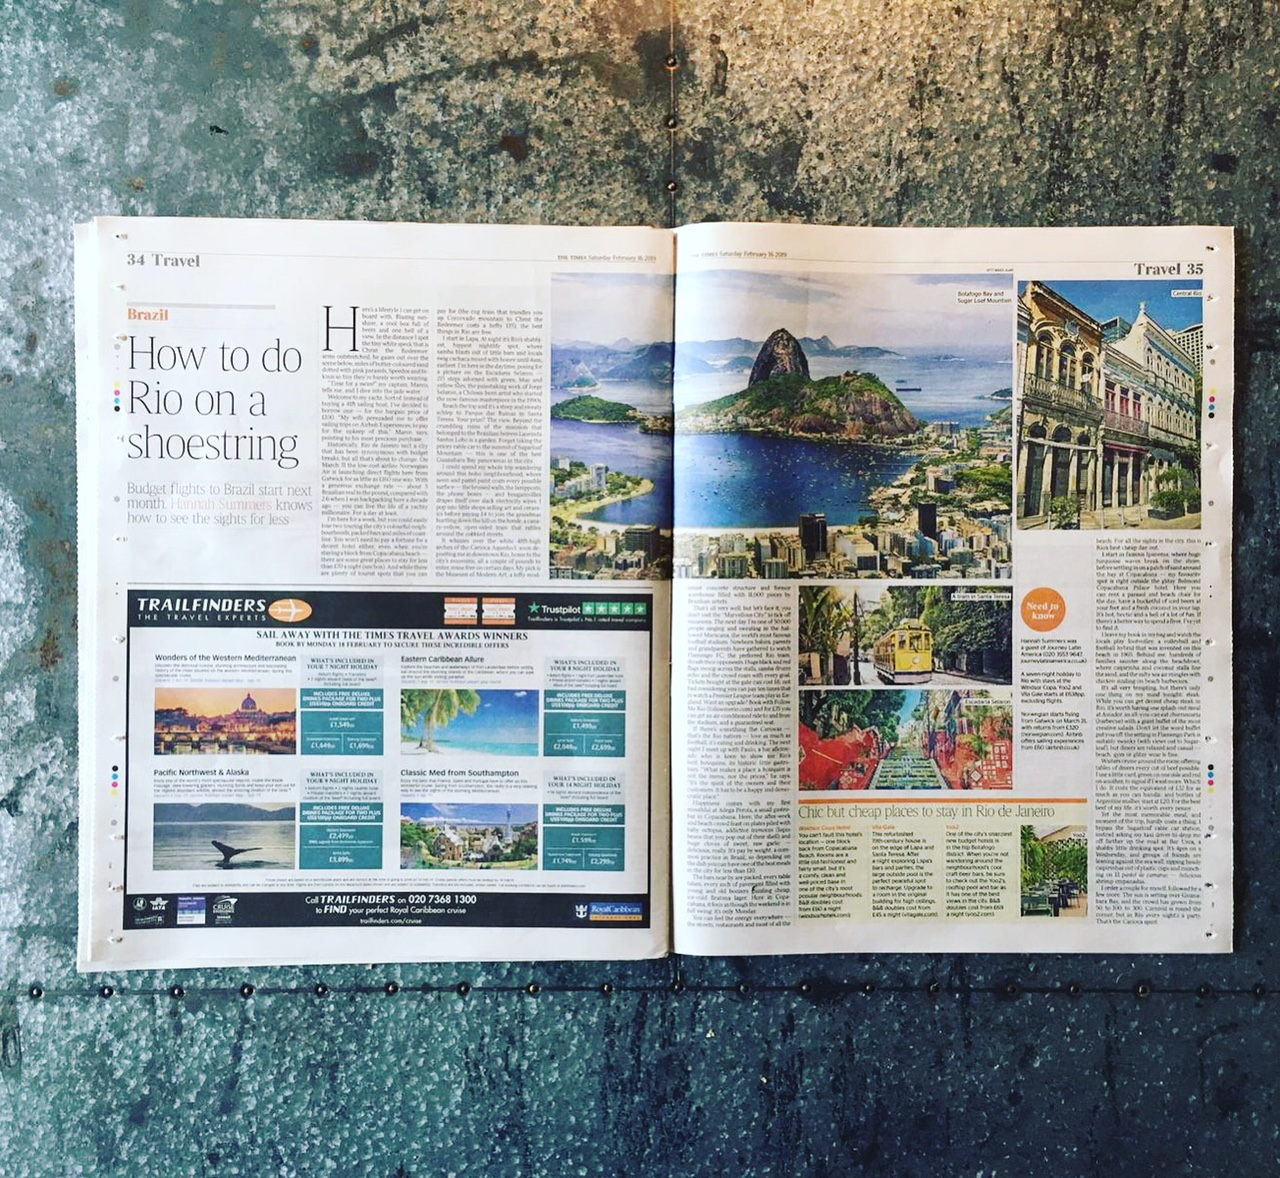 Travel | The Times | Rio, Brazil